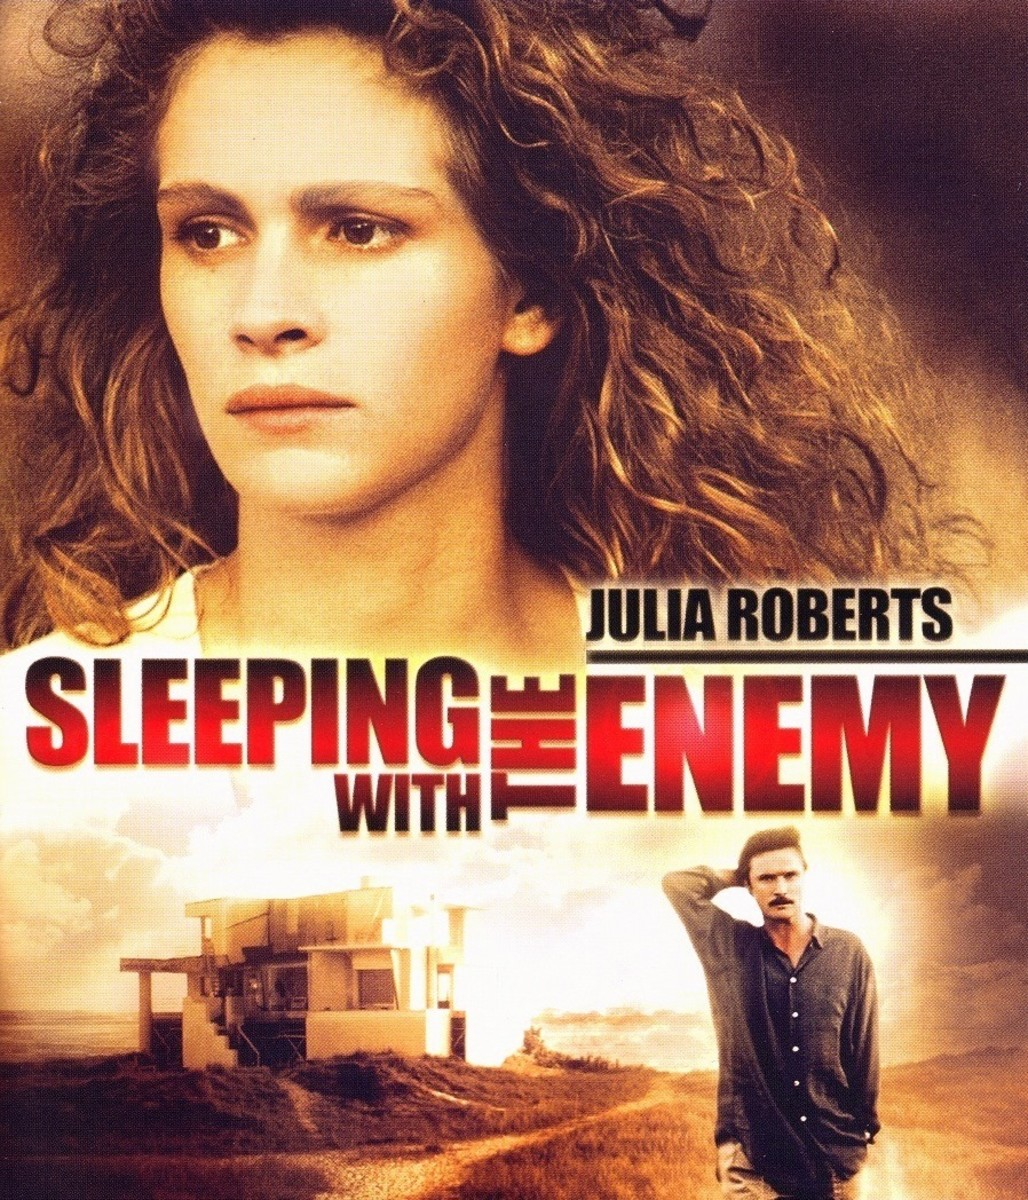 Sleeping with the Enemy is a 1991 psychological thriller starring Julia Roberts, Patrick Bergin and Kevin Anderson.